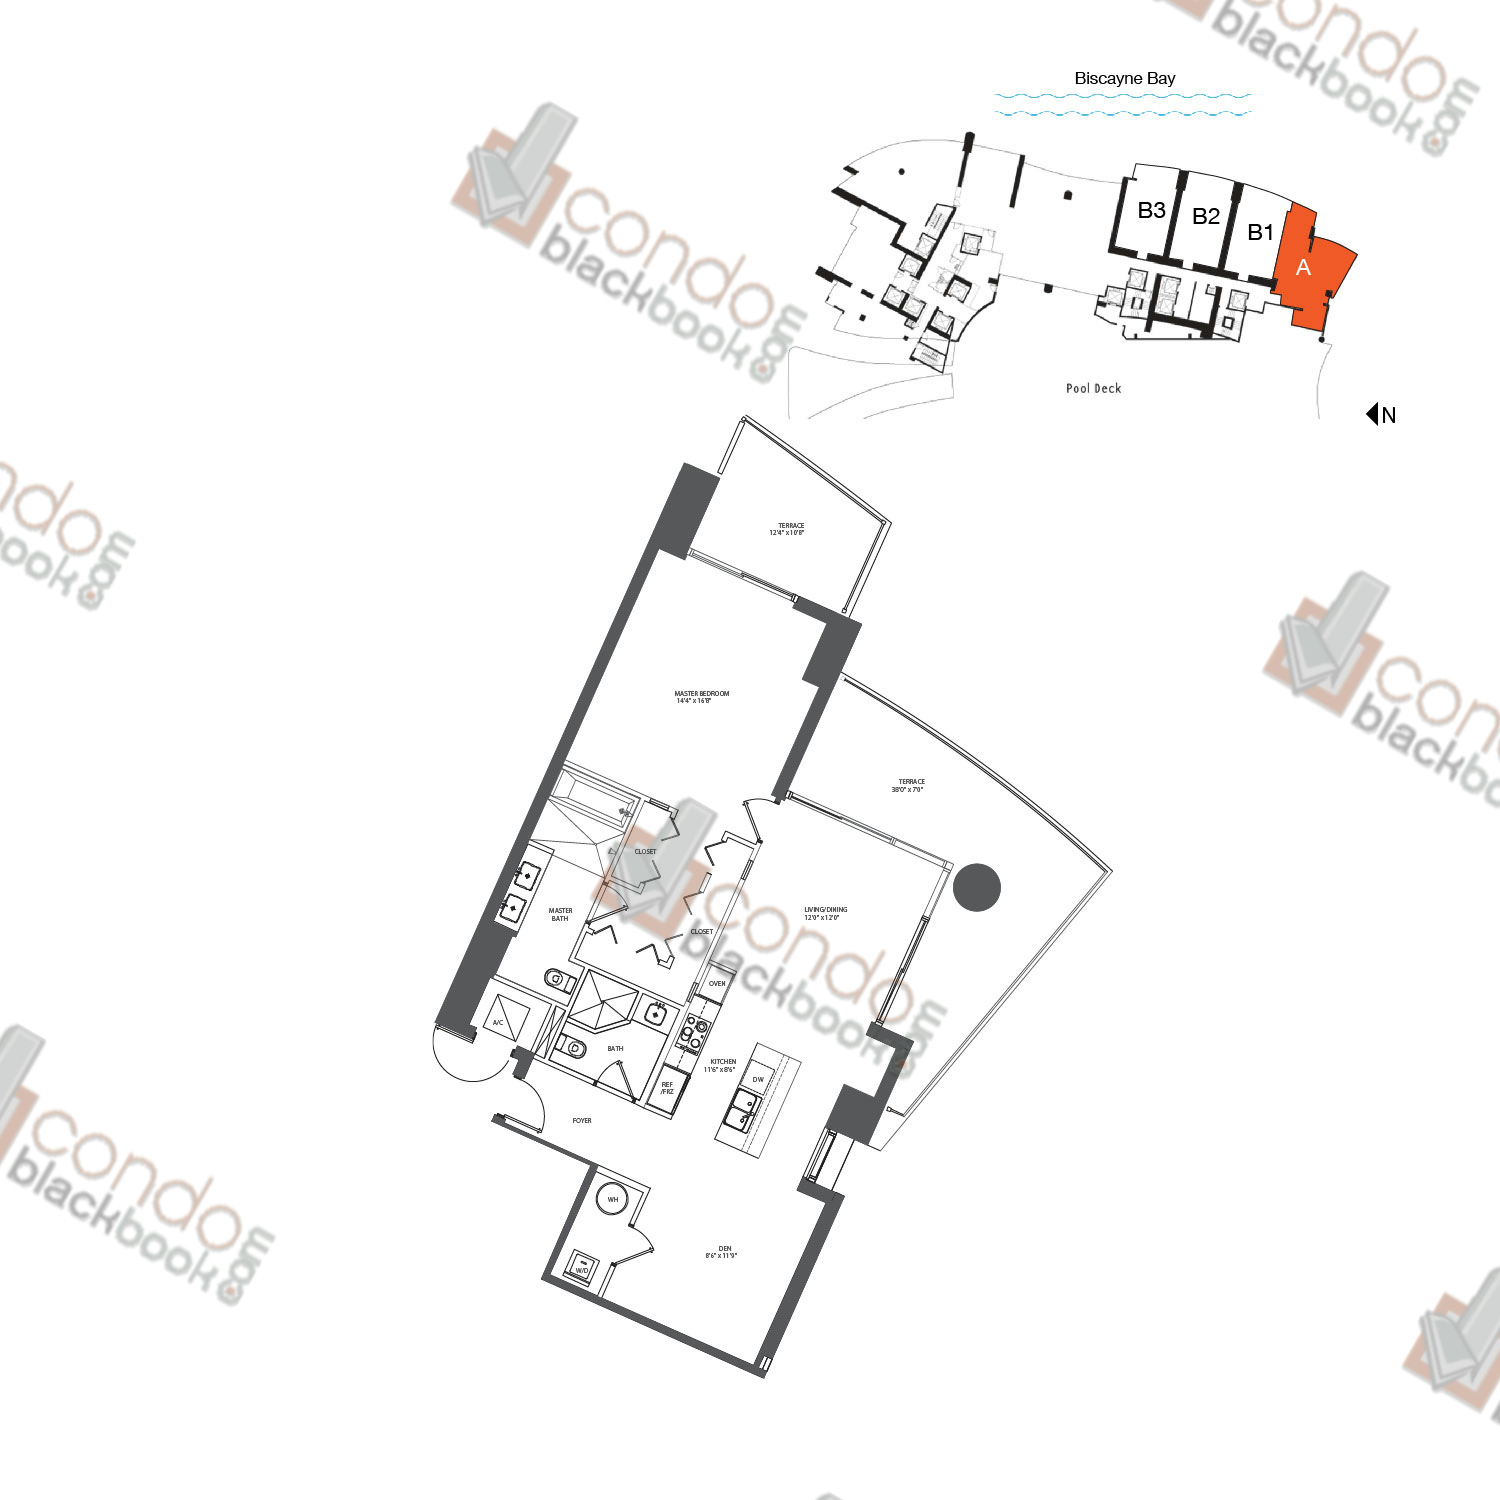 Floor plan for 900 Biscayne Bay Downtown Miami Miami, model FLAT A, line 01, 1/1.5 bedrooms, 1,069 sq ft